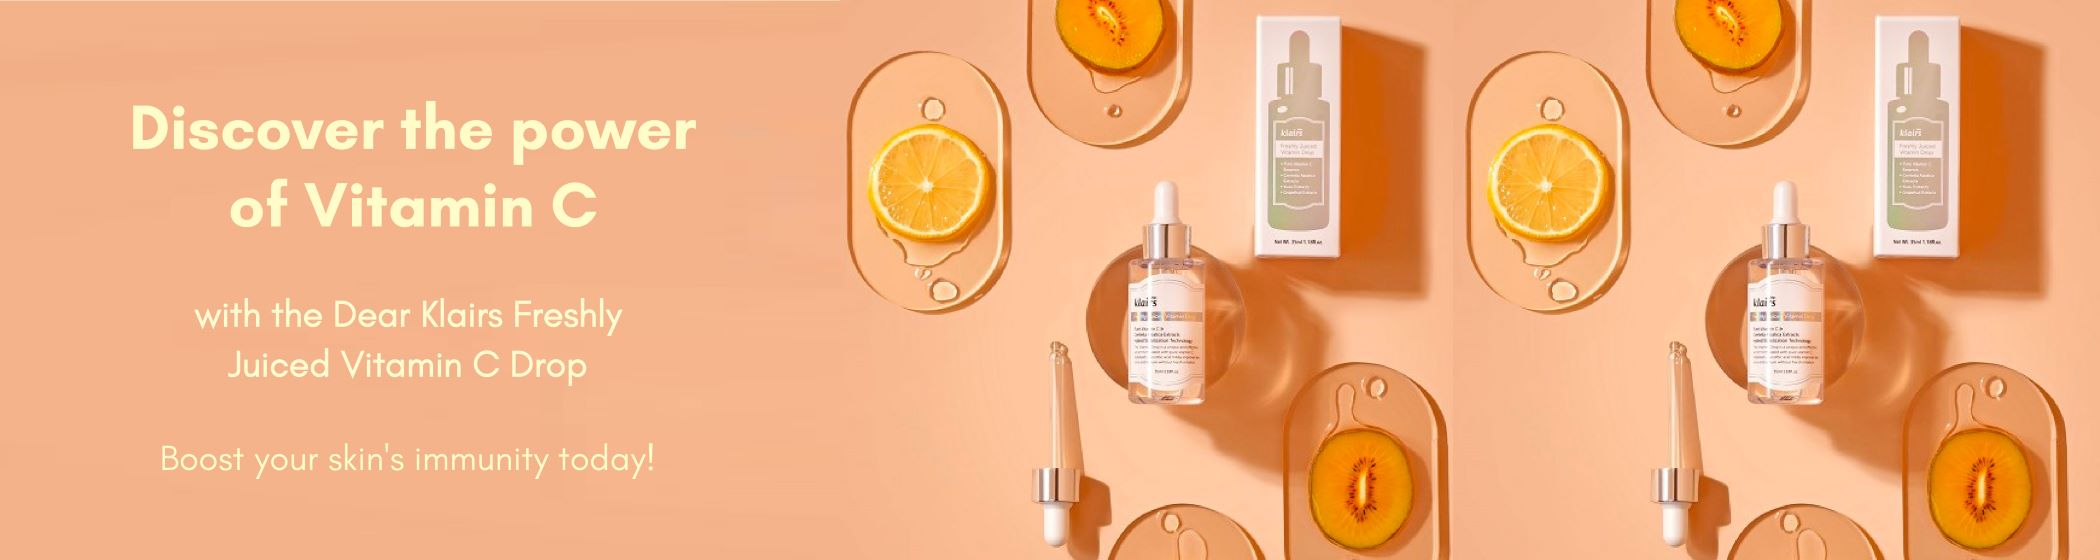 Shop Korean, eco-friendly and toxin-free skincare products from Dear, Klairs on SublimeLife.in.